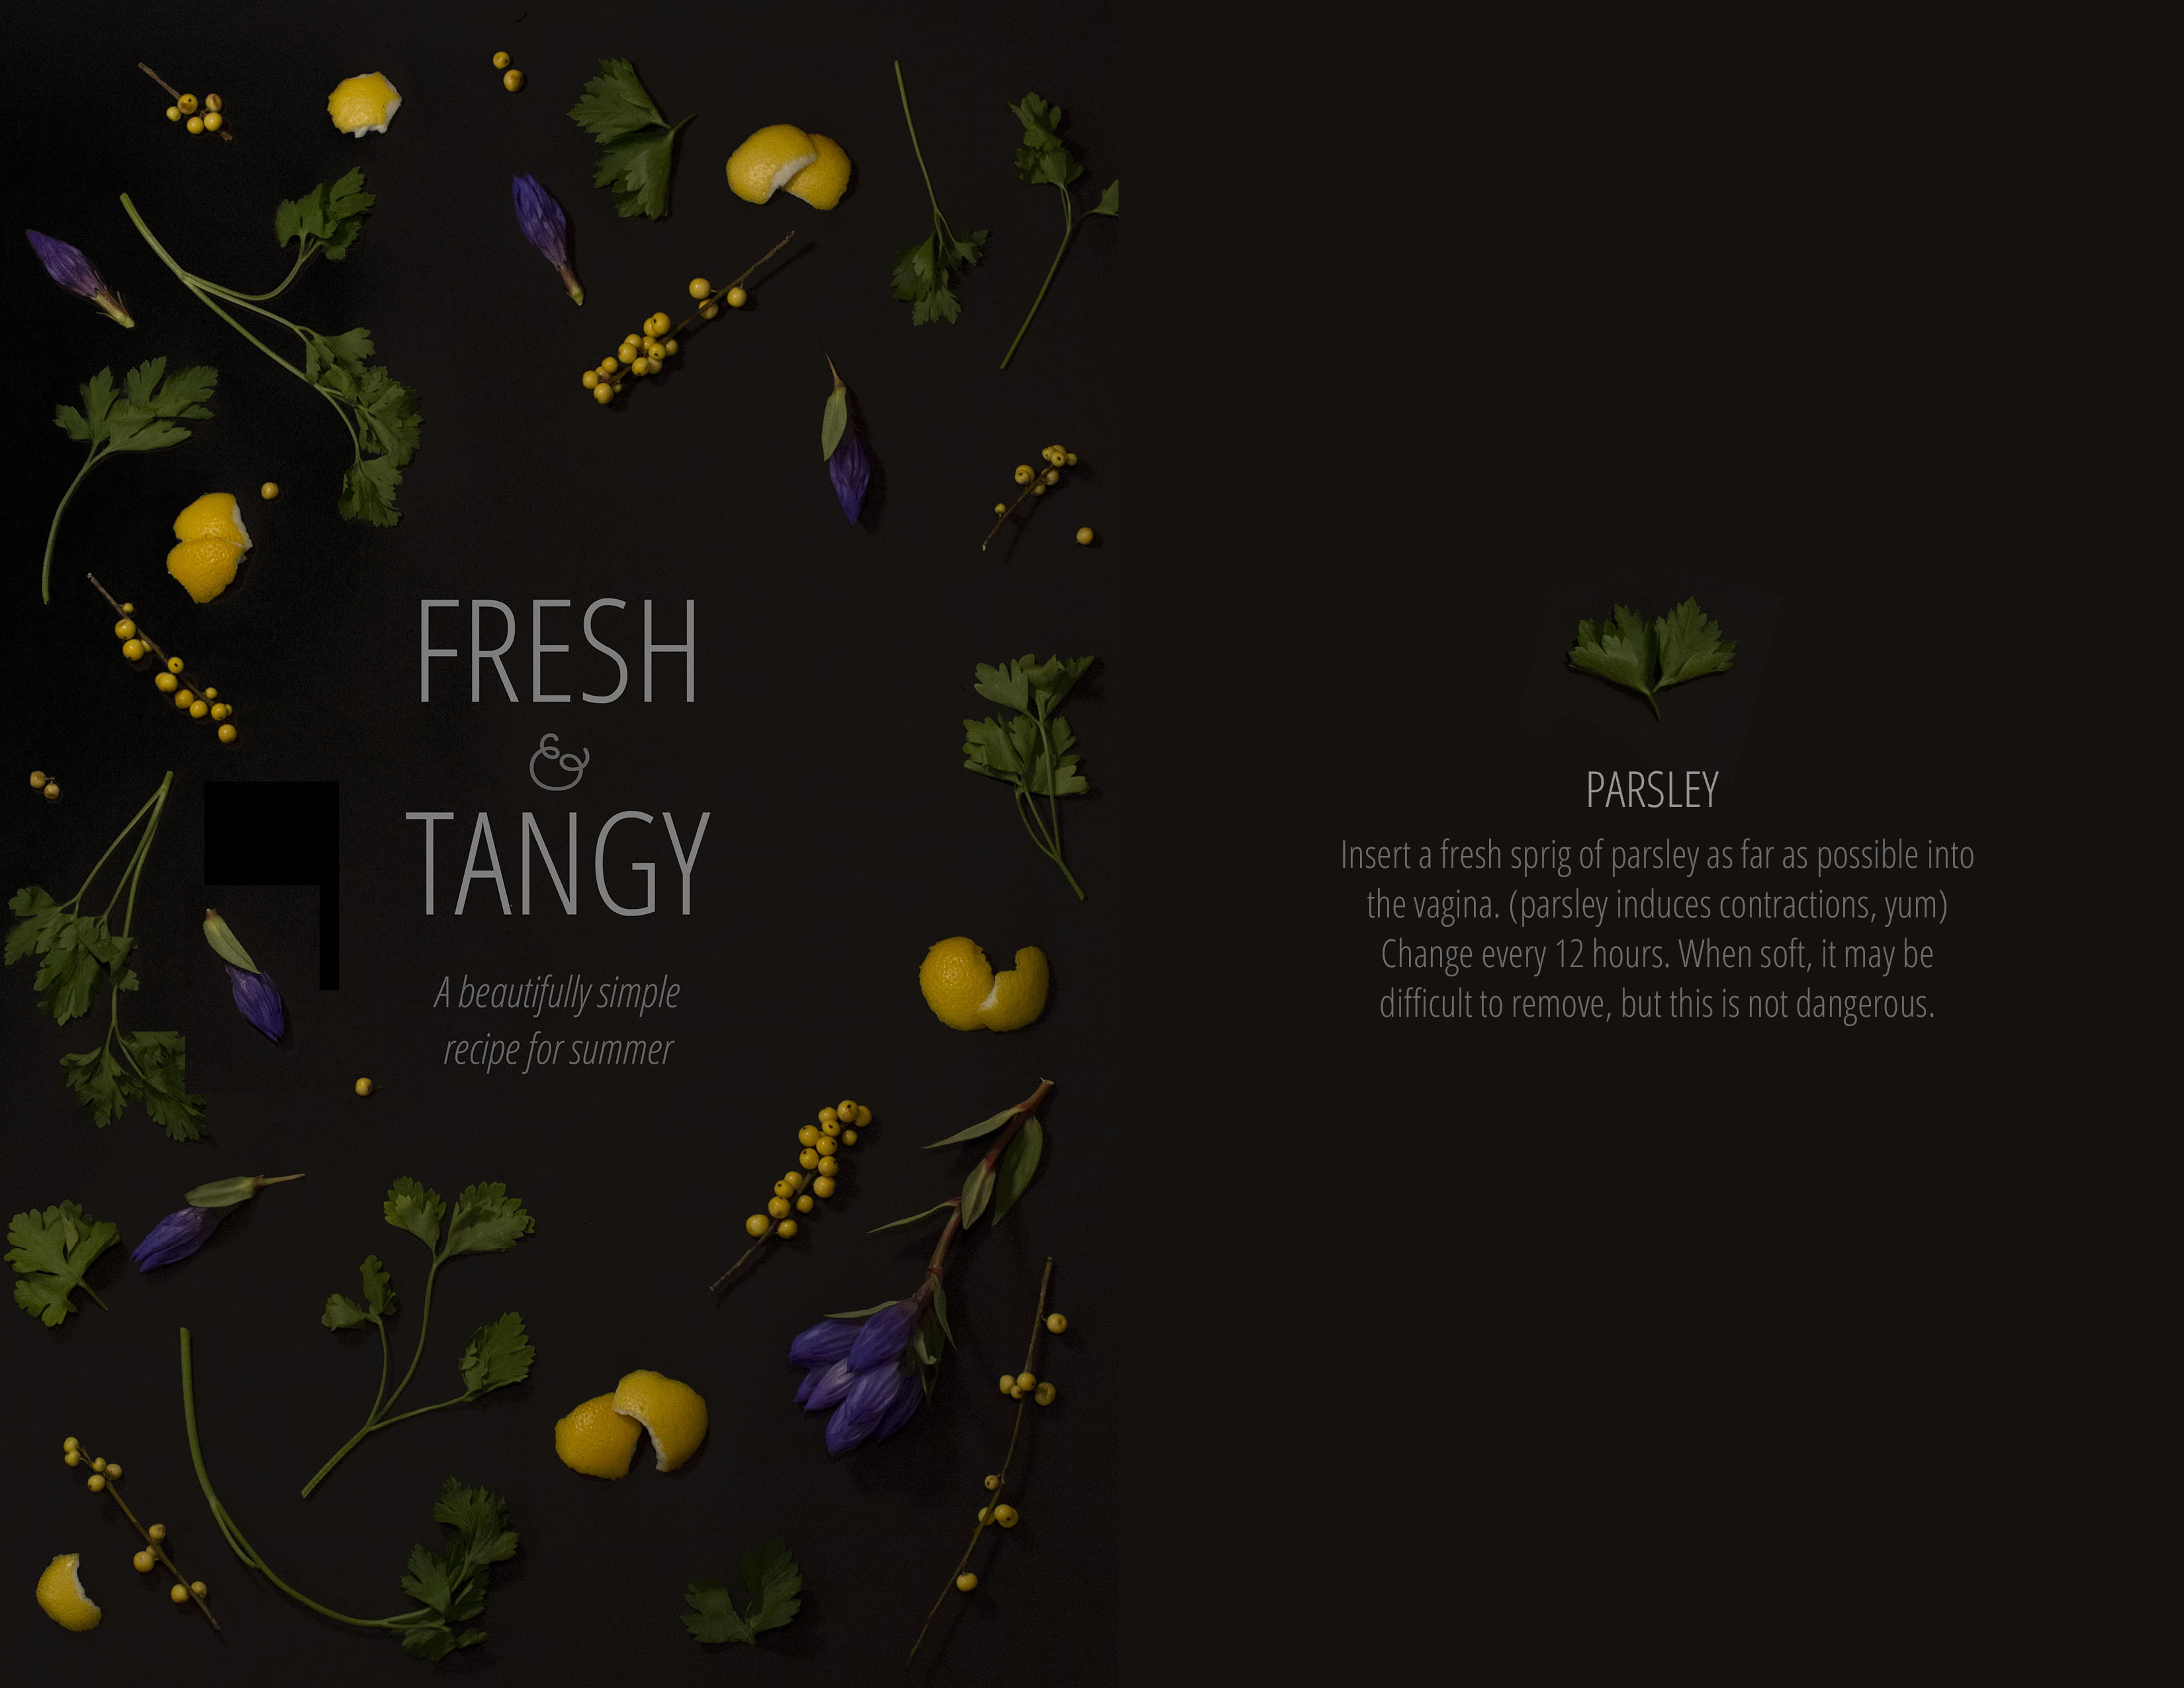 On the left is the text: Fresh & Tangy. Surrounding the text are pieces of lemon rind, parsley, purple flower buds, and yellow berries on twigs. On the right side of the spread is a single parsley leaf with text below.